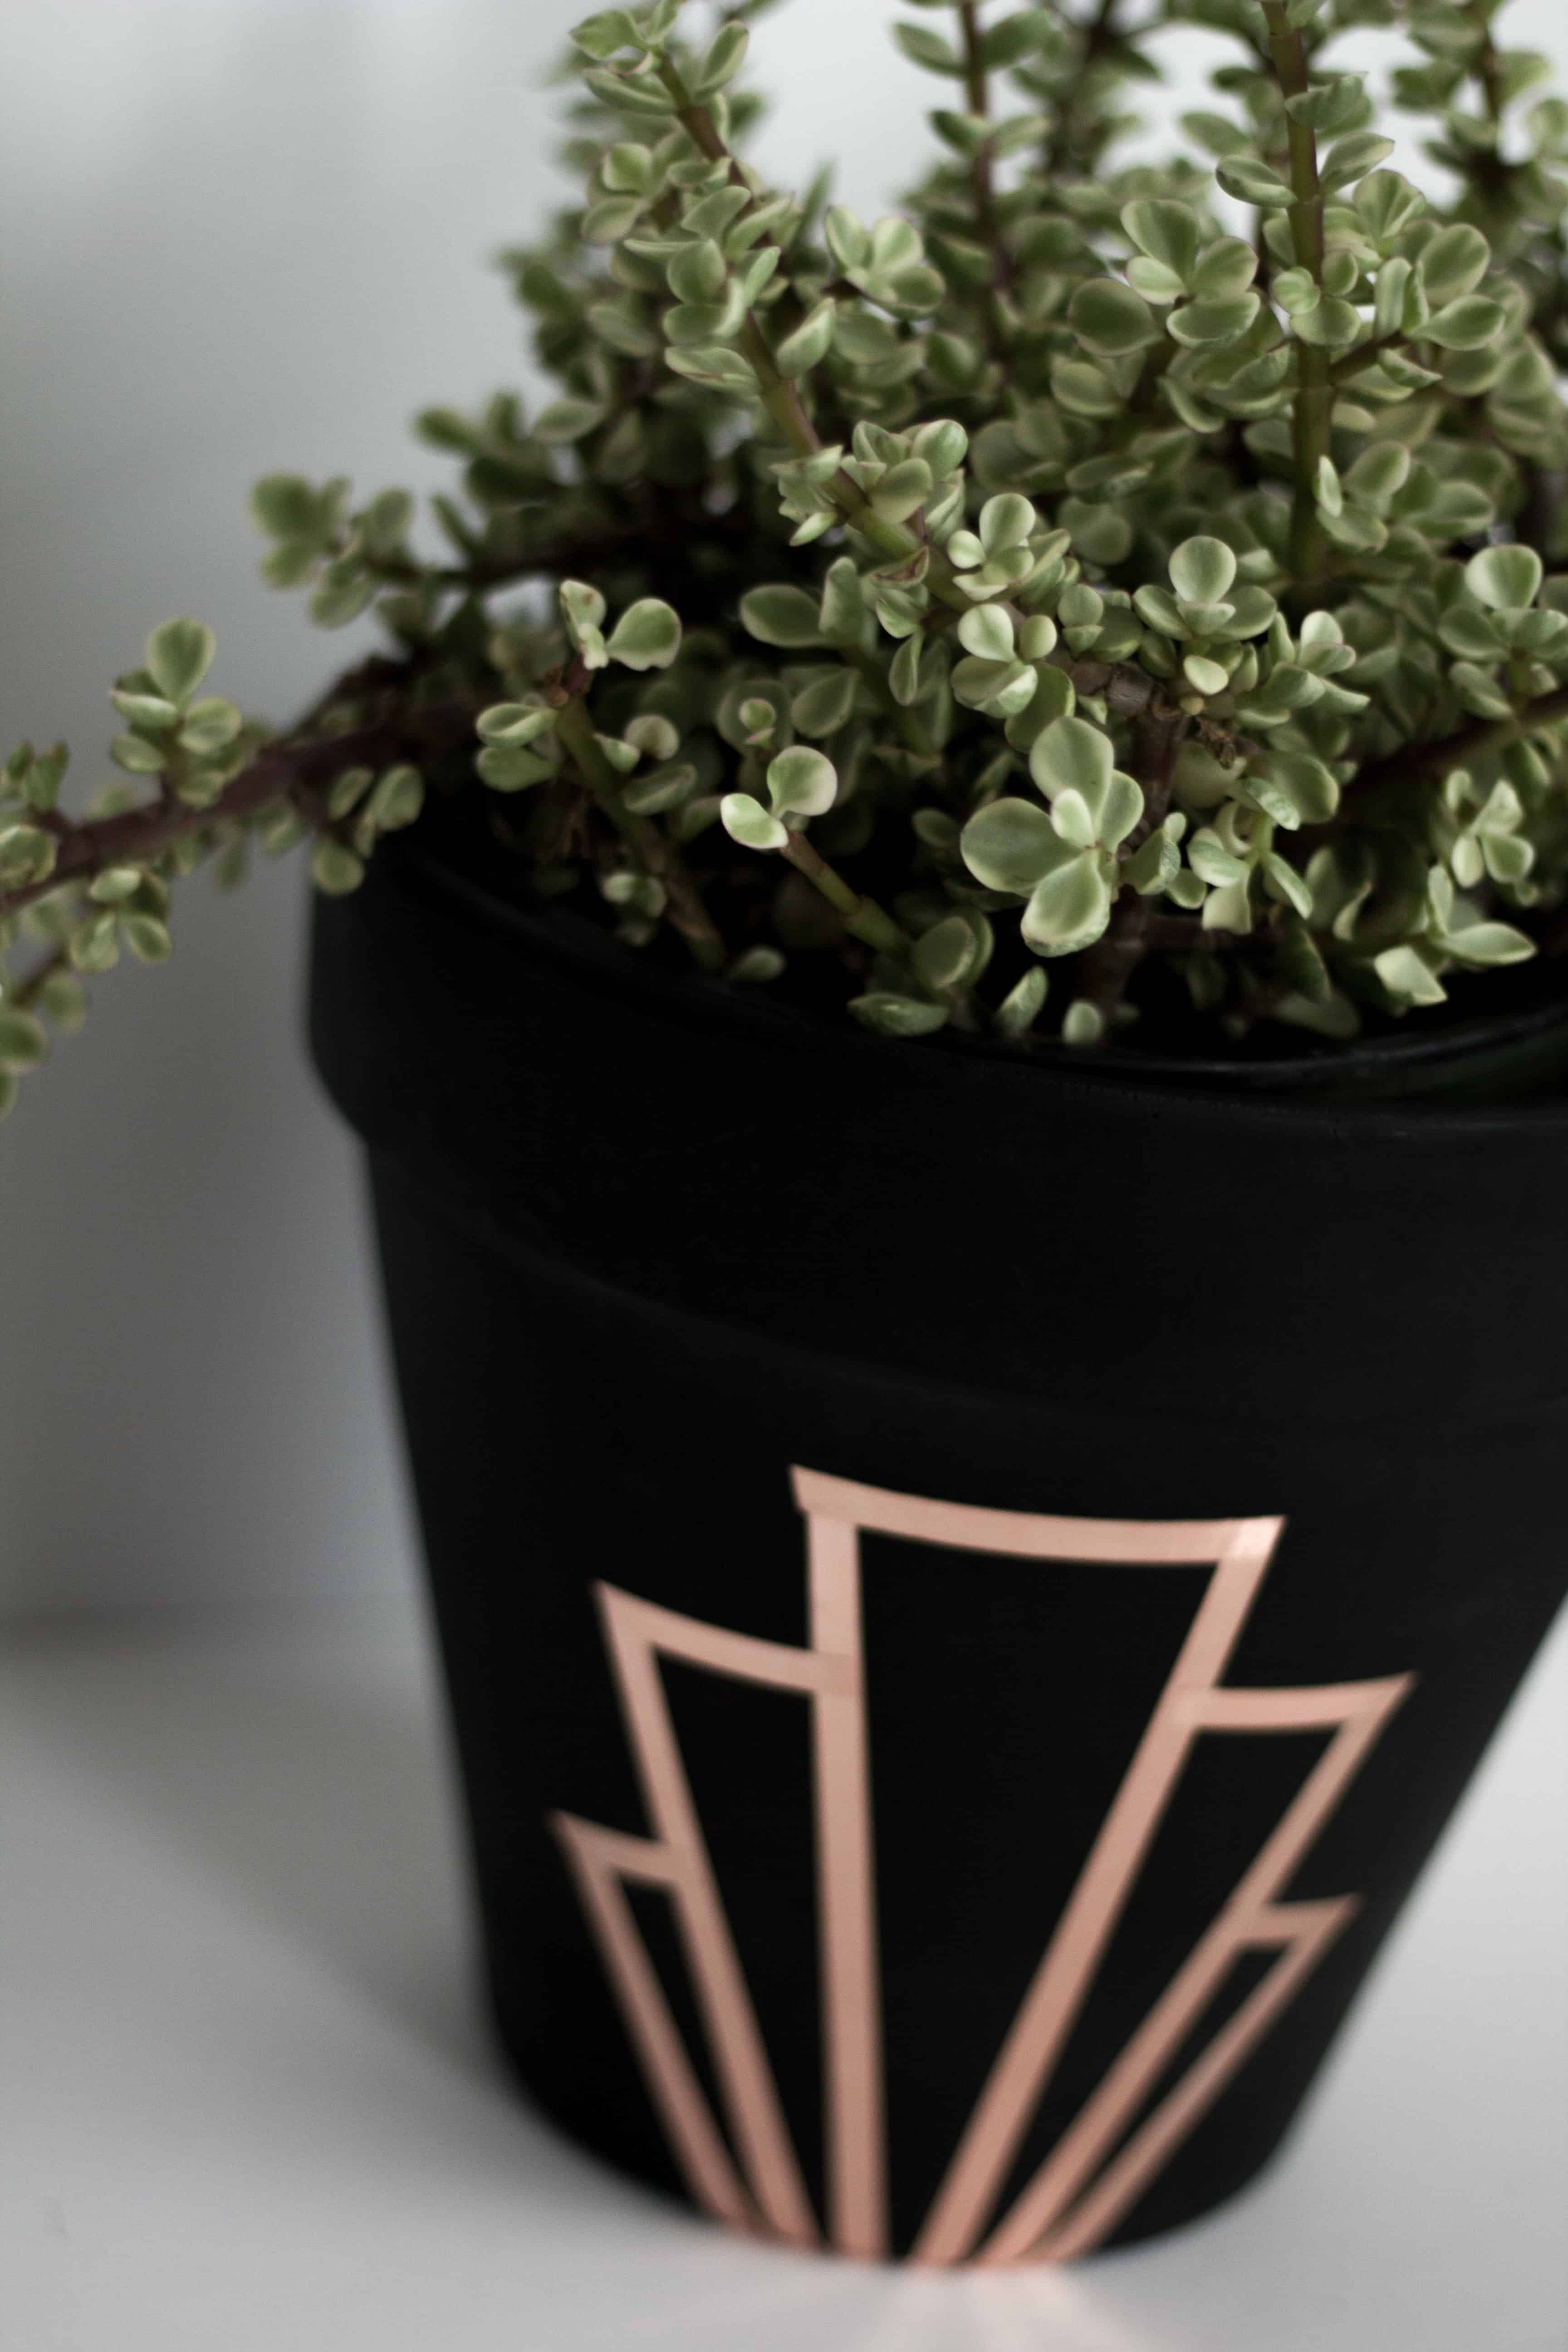 Copper art deco DIY planter